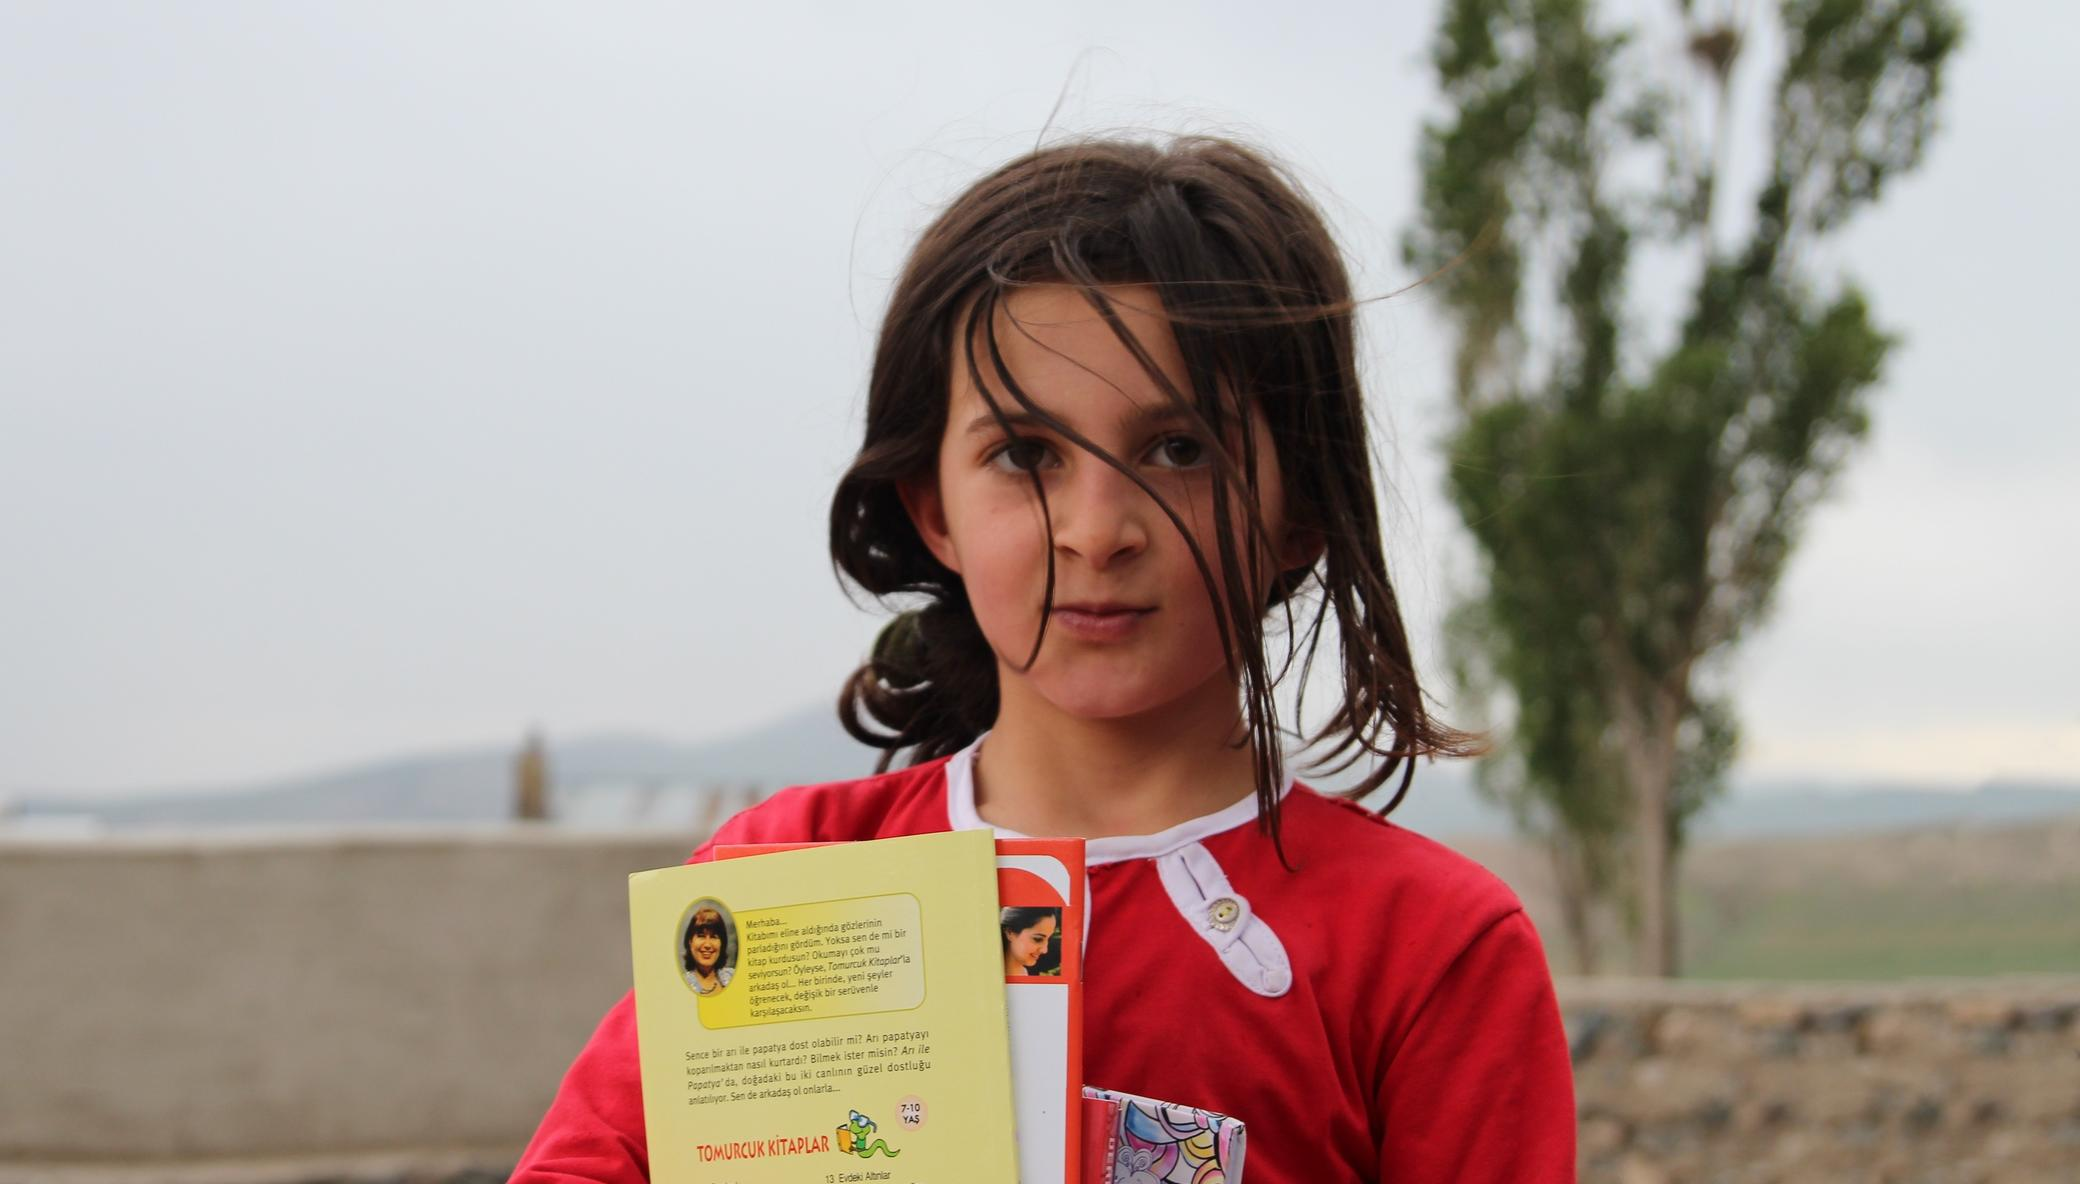 LET'S  EMPOWER GIRLS BY SUPPORTING THEIR EDUCATION